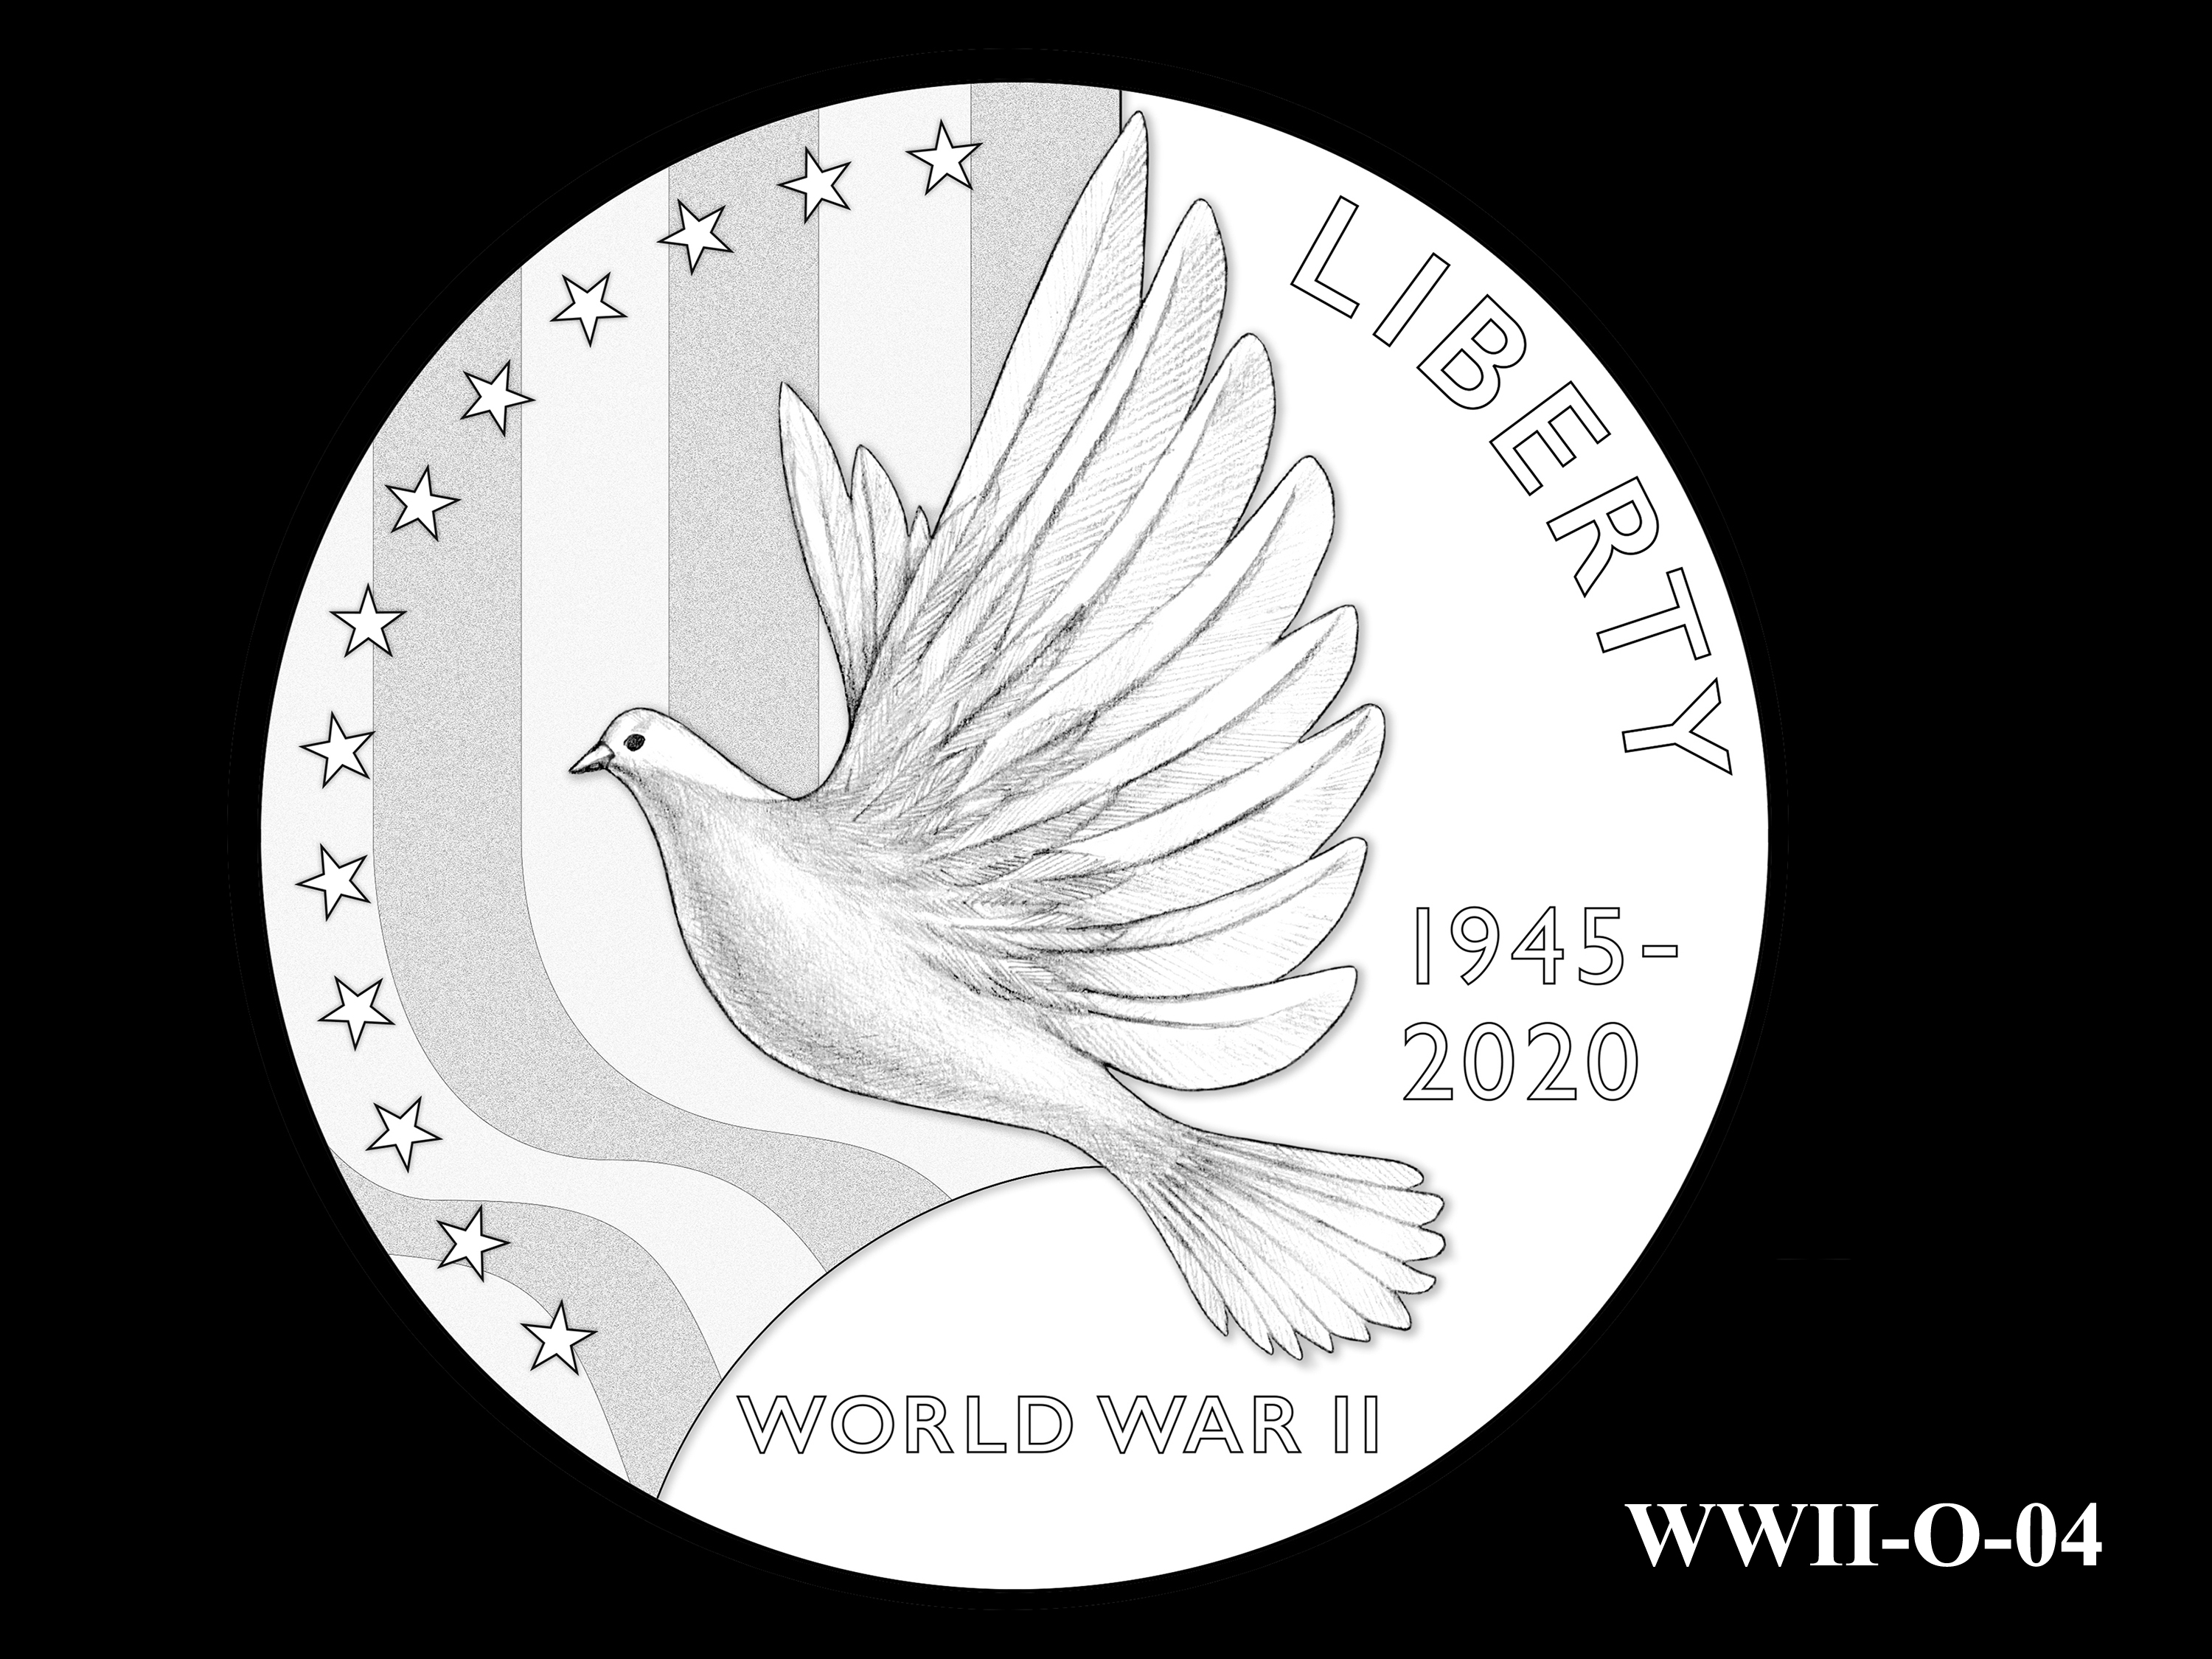 WWII-O-04 --End of World War II 75th Anniversary Program - Obverse